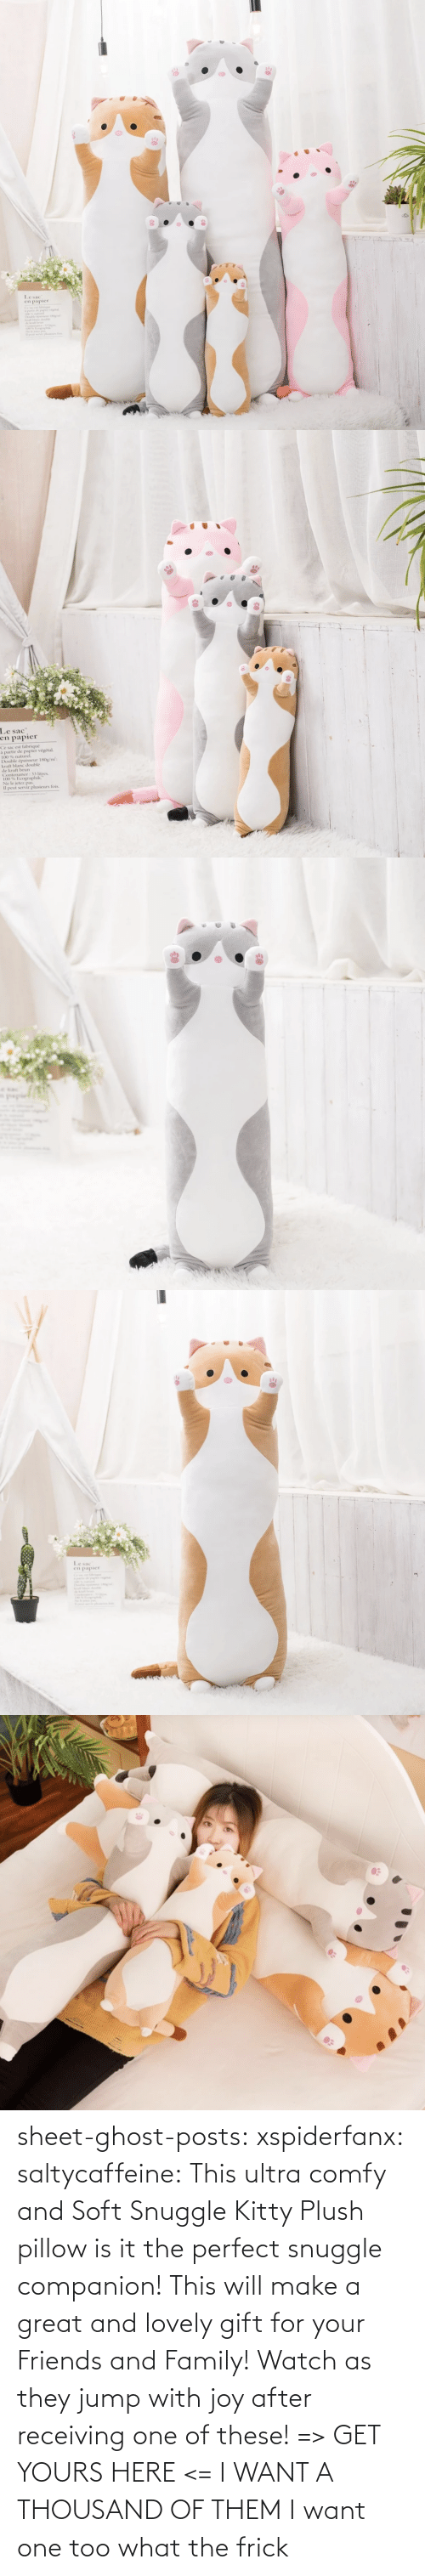 comfy: sheet-ghost-posts: xspiderfanx:  saltycaffeine:  This ultra comfy and Soft Snuggle Kitty Plush pillow is it the perfect snuggle companion! This will make a great and lovely gift for your Friends and Family! Watch as they jump with joy after receiving one of these! => GET YOURS HERE <=    I WANT A THOUSAND OF THEM  I want one too what the frick